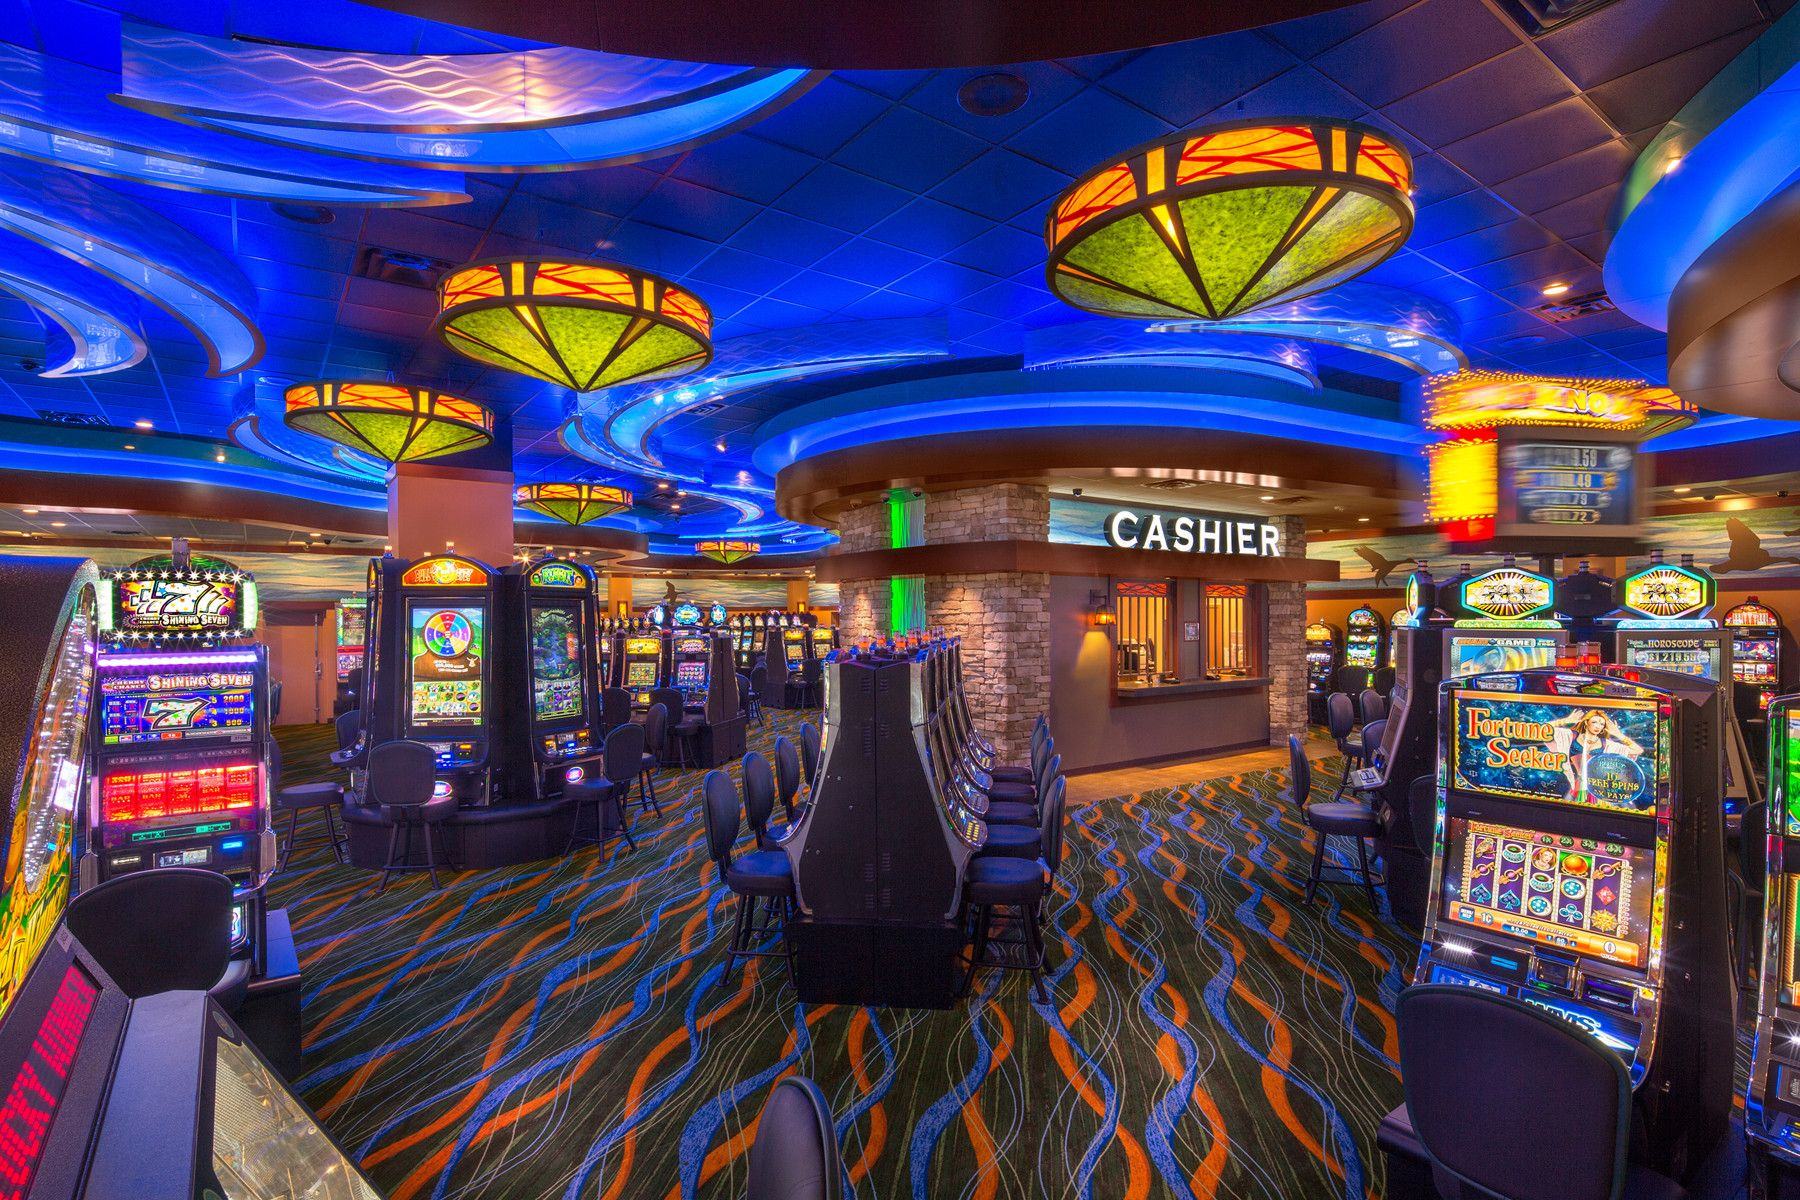 What Is the Basic Overview of the Casino Floor?